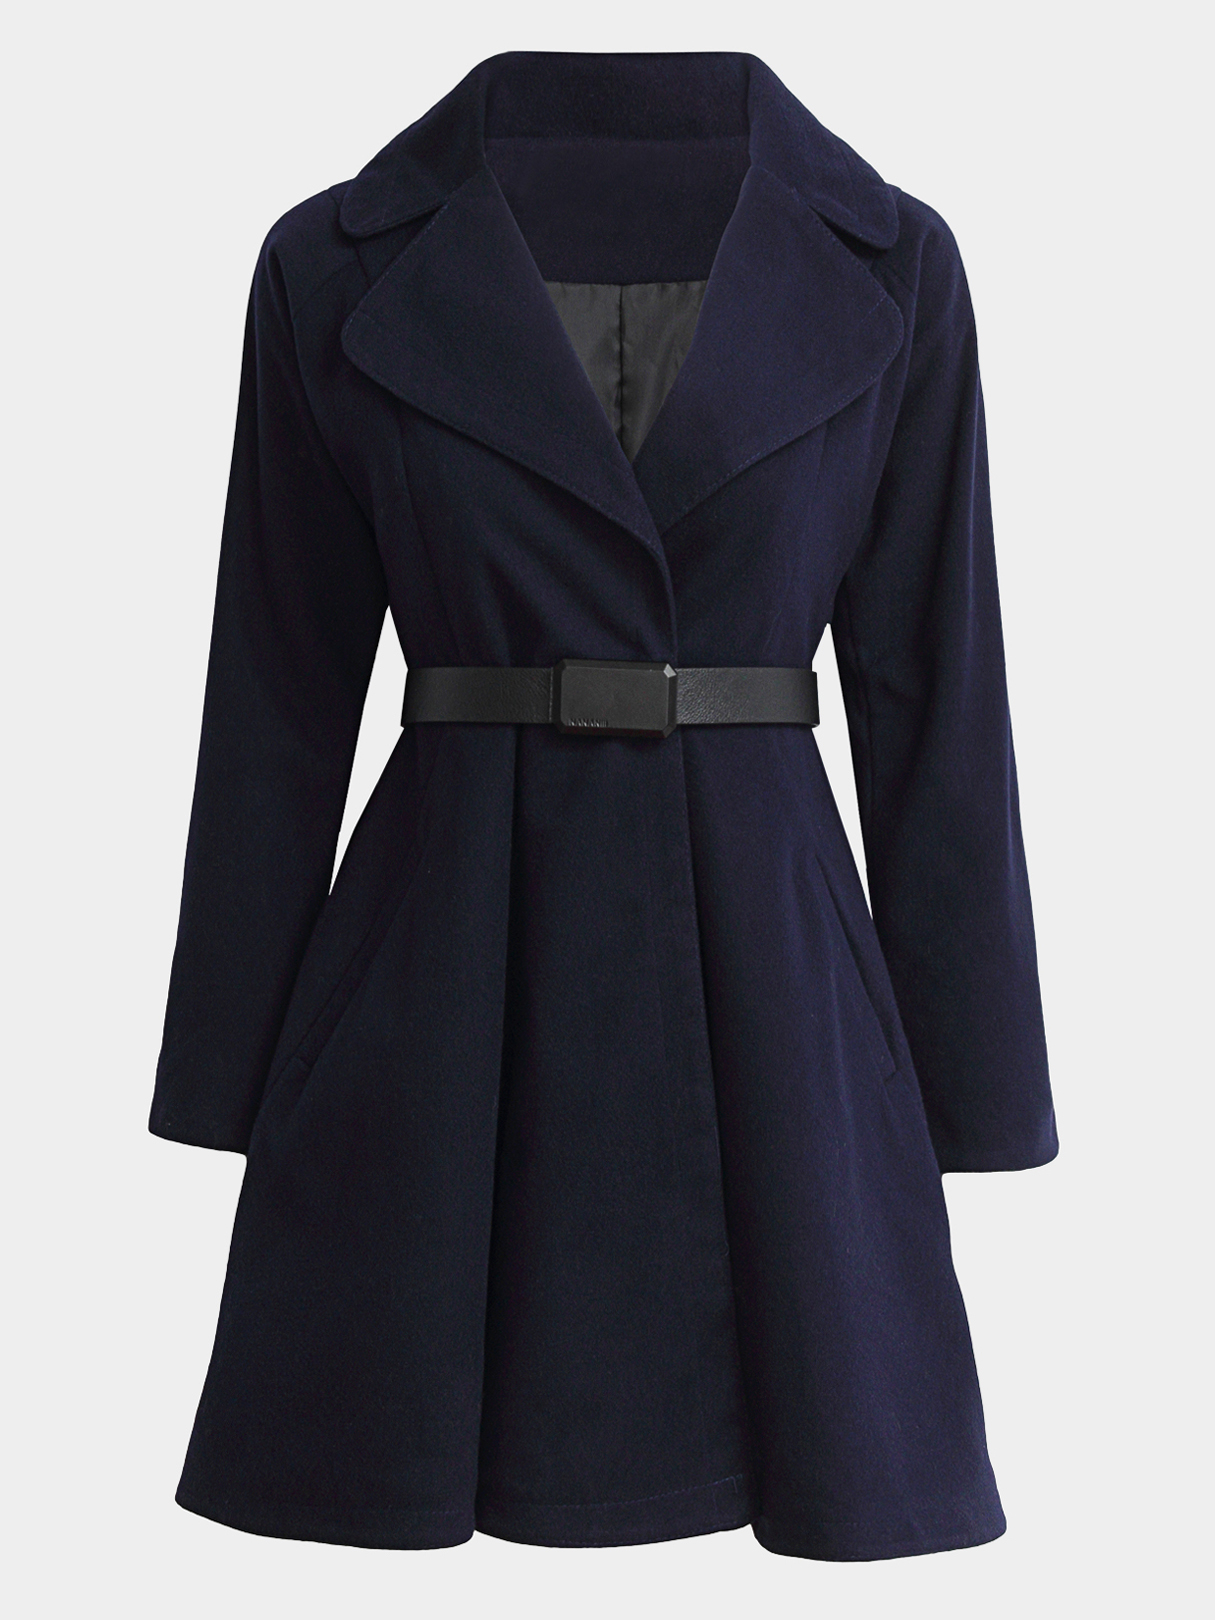 Navy Blue Fashion Lapel Collar Outerwear with Seamed Pocket lapel collar top with front pocket in light grey